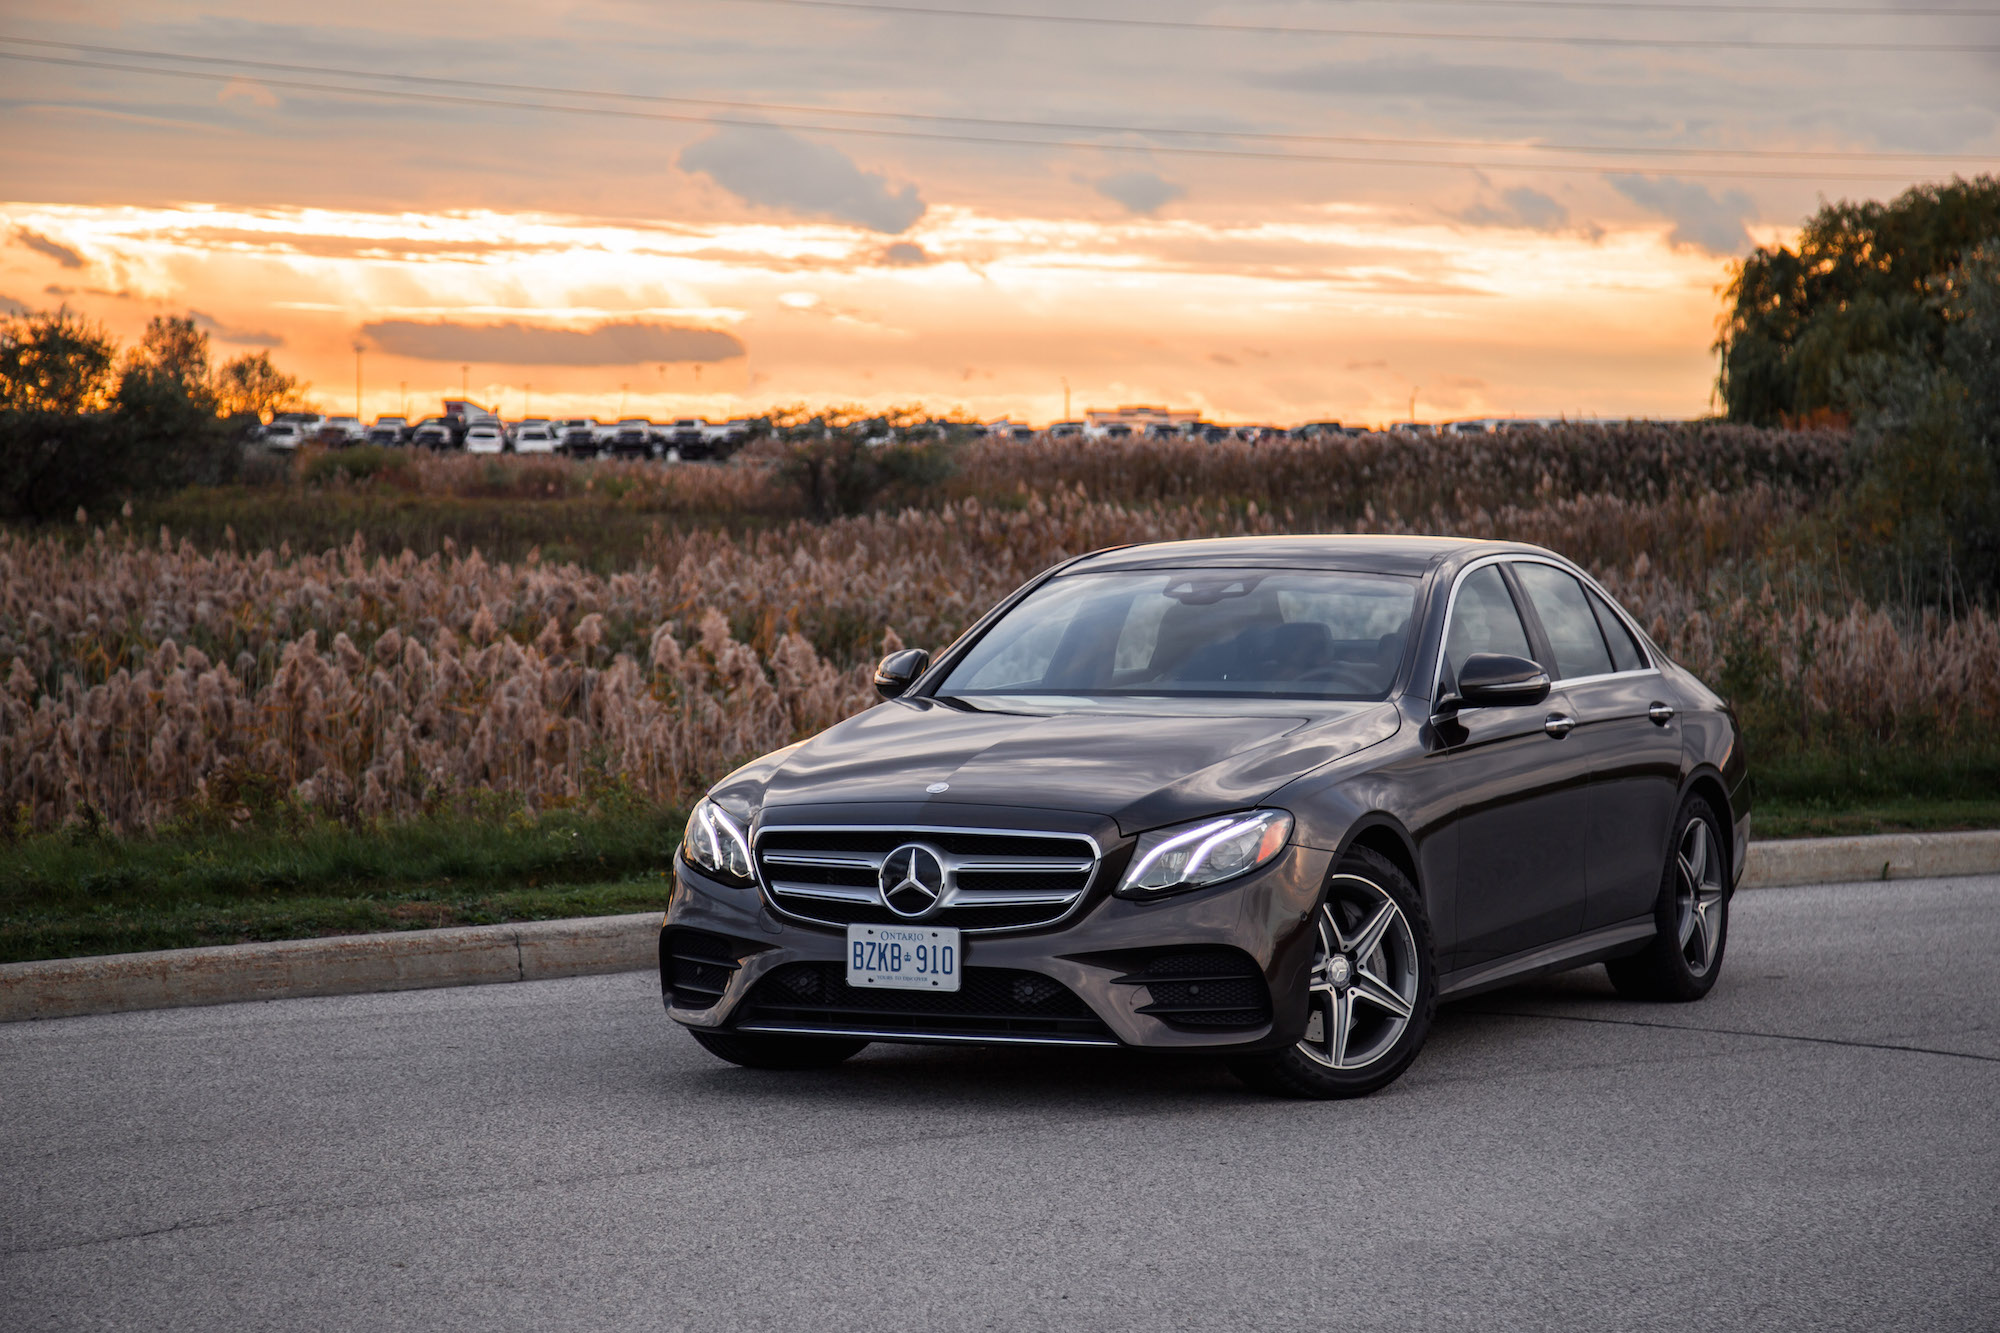 Review 2017 mercedes benz e 300 4matic canadian auto review for 2017 mercedes benz gls450 curb weight